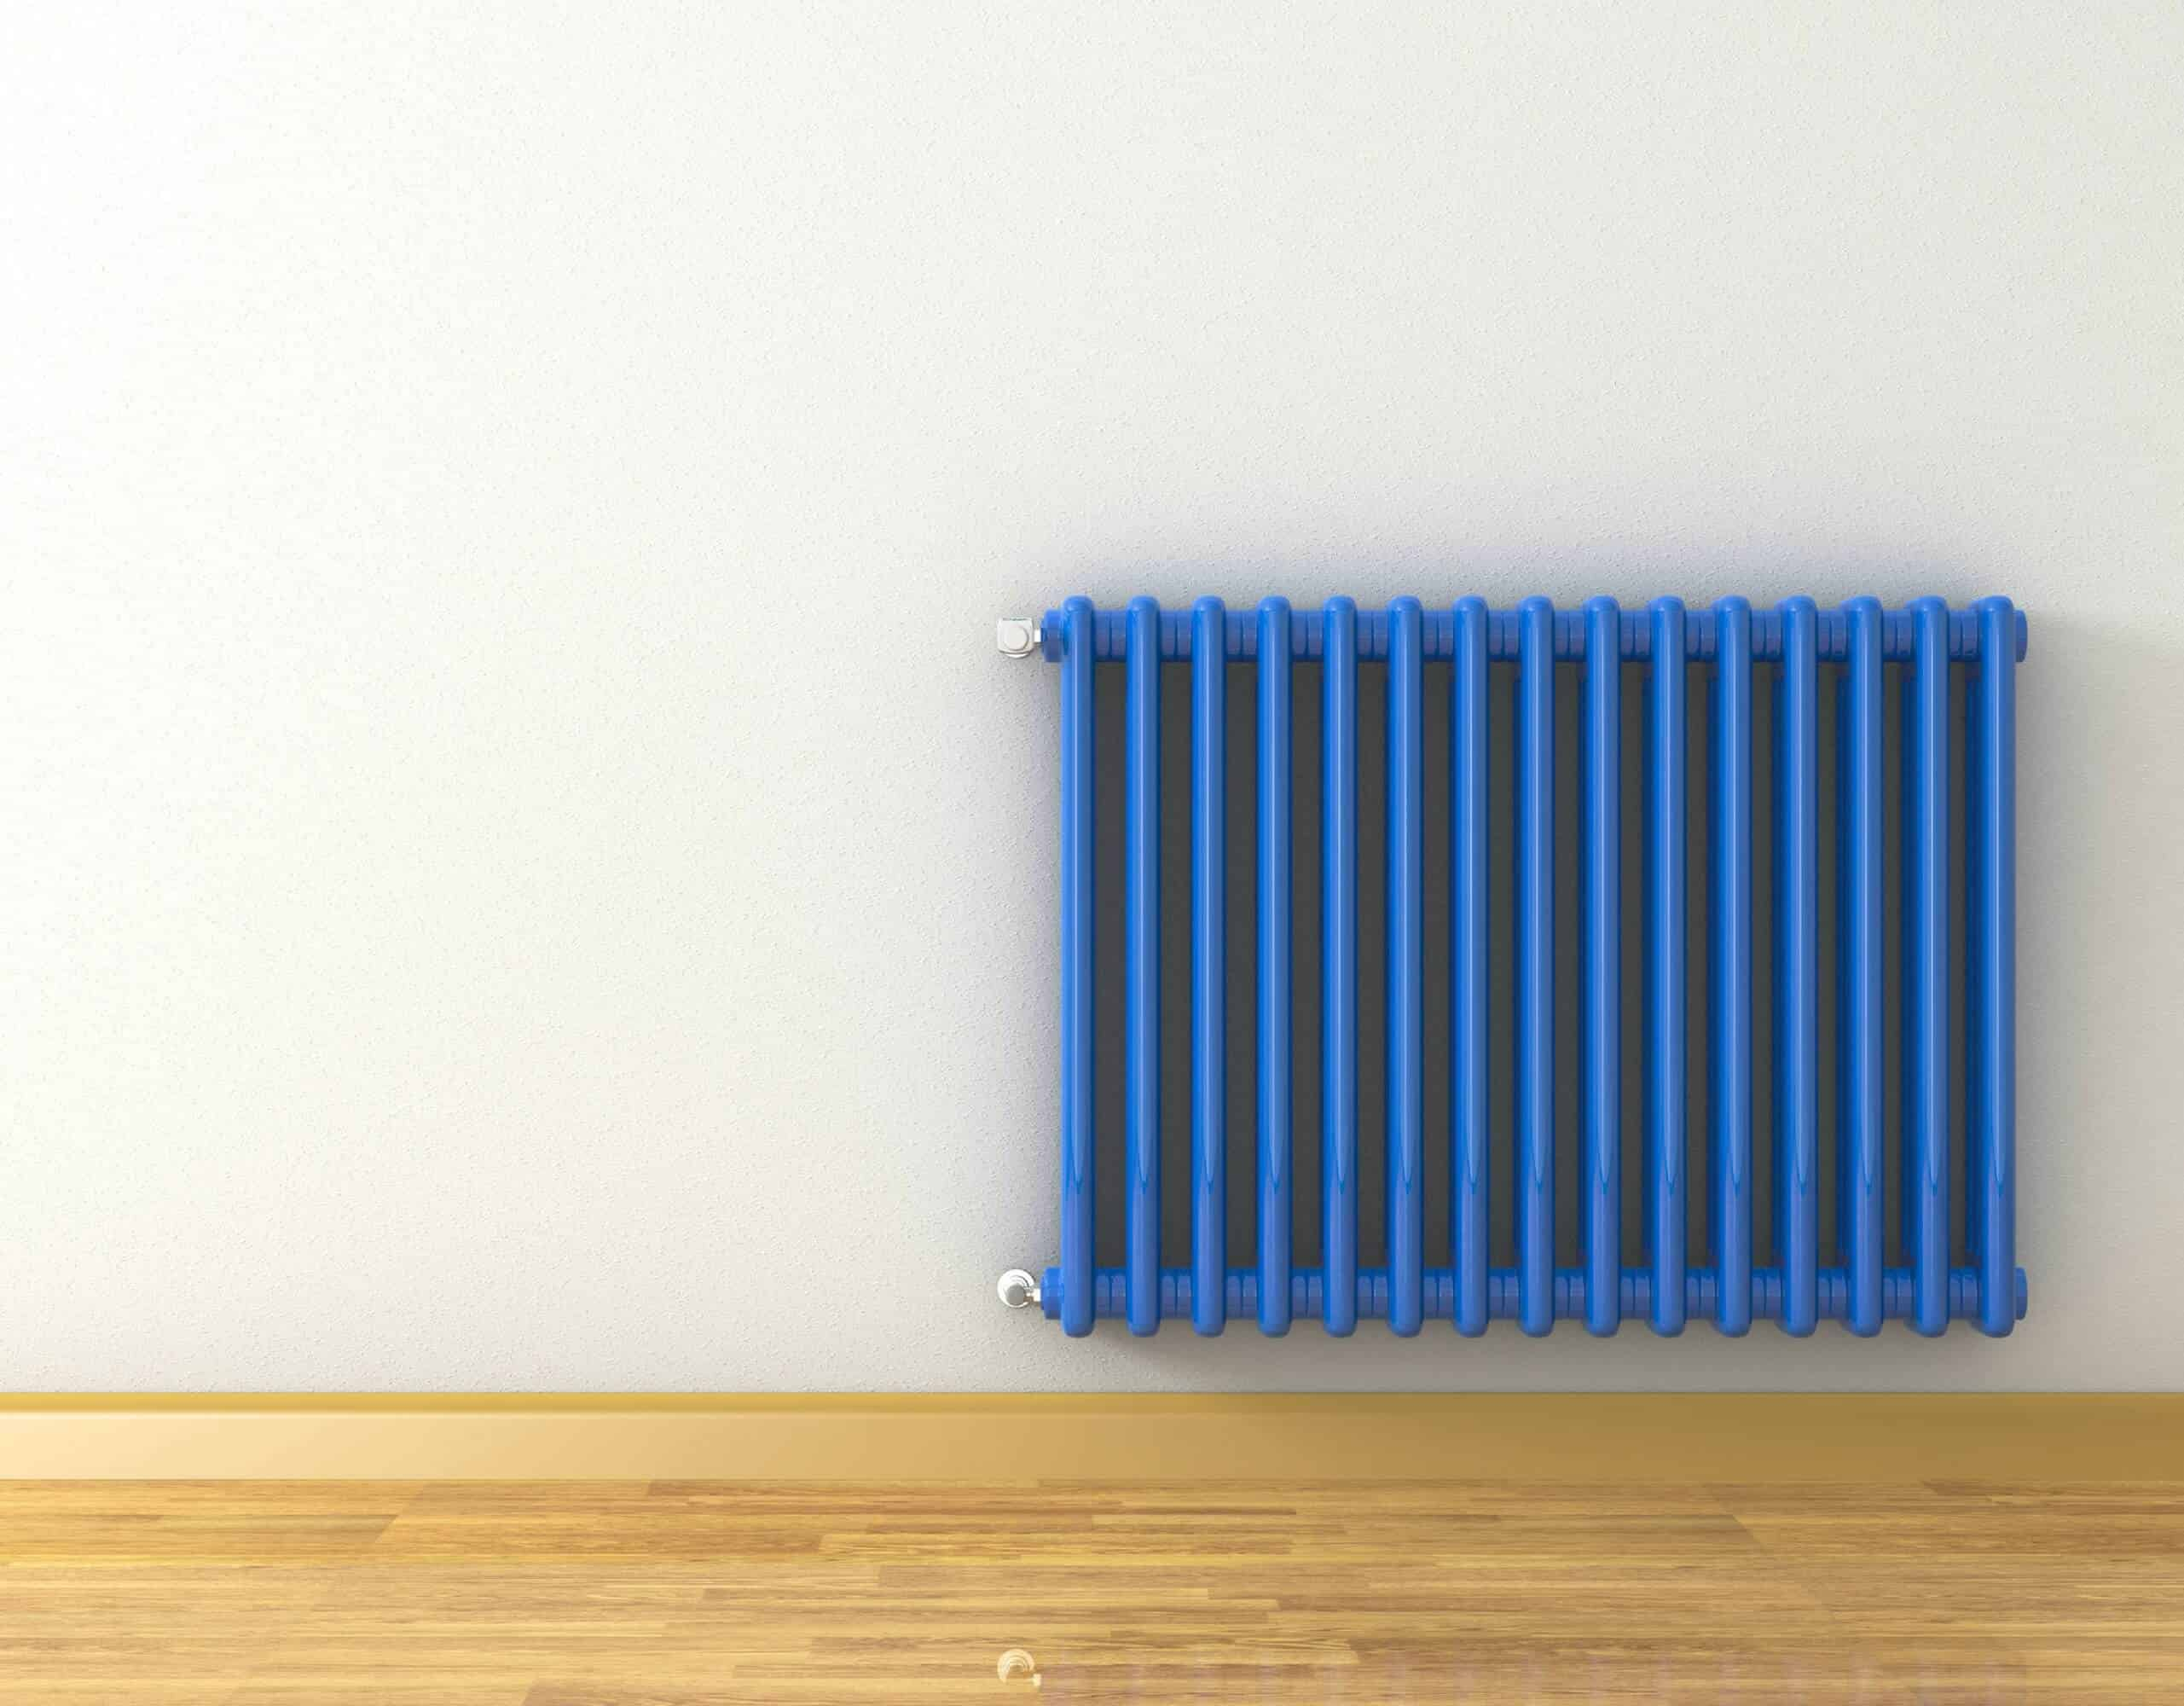 New Radiator Installation in Leigh on Sea Essex